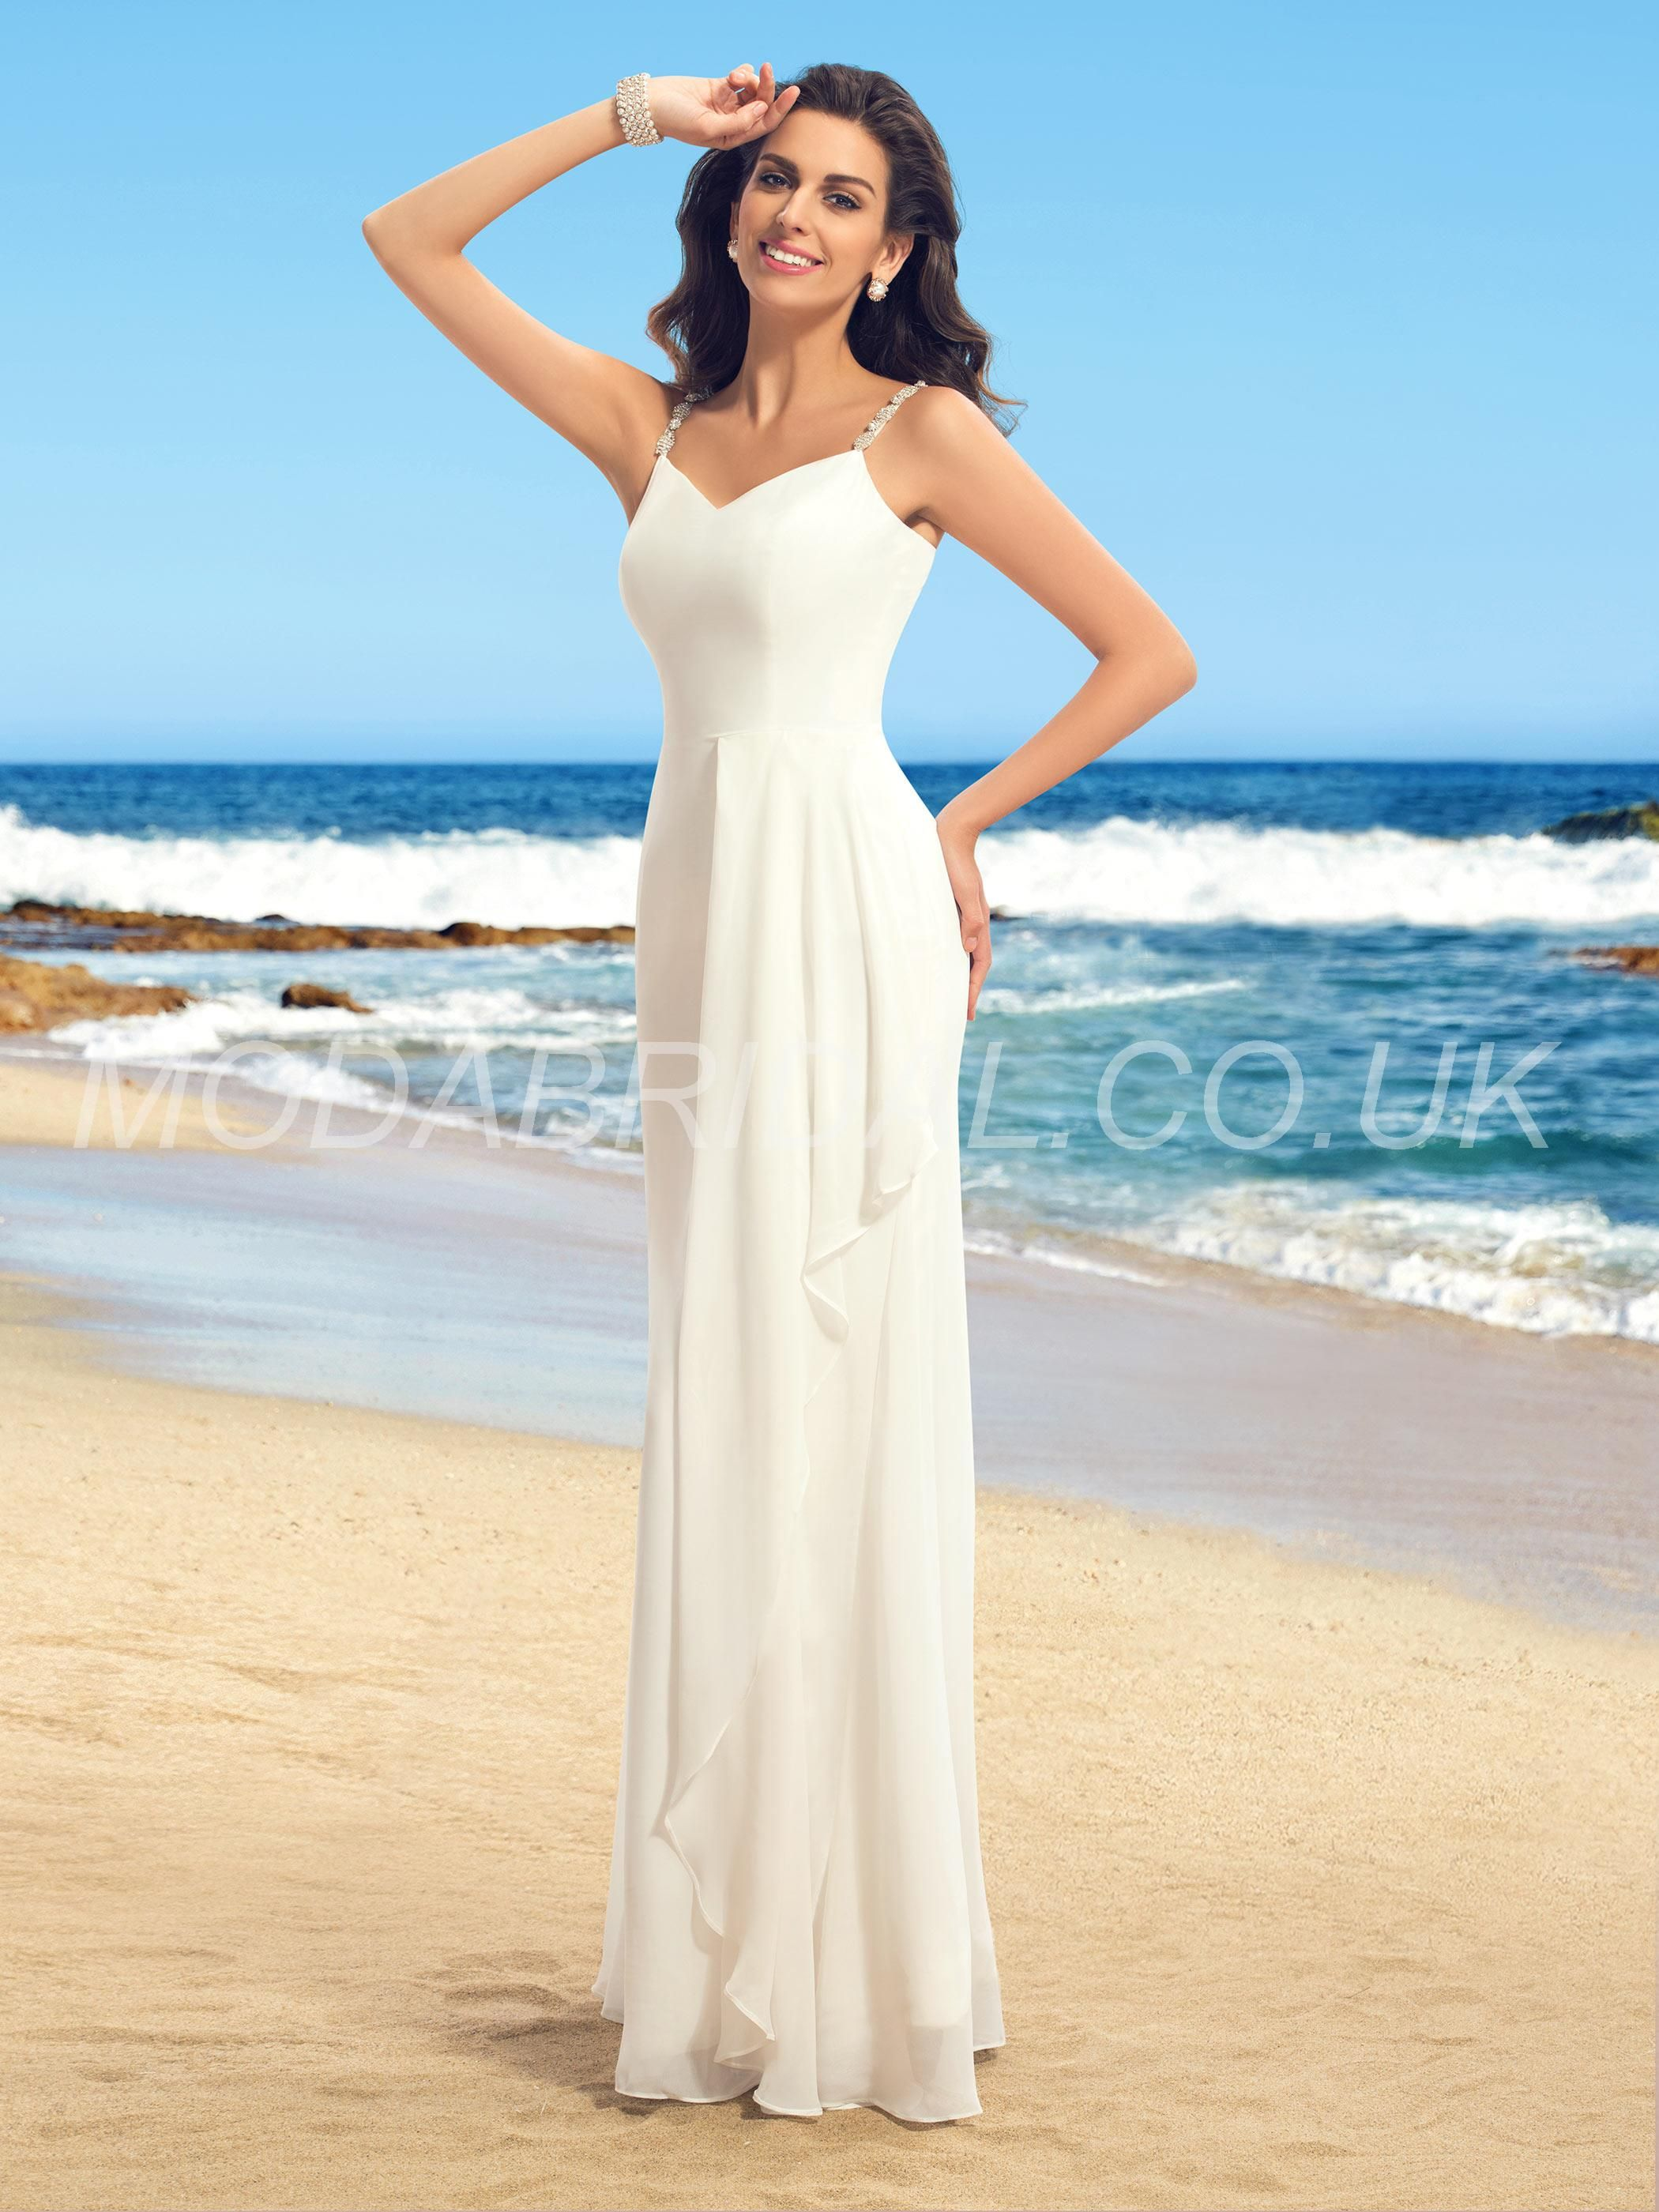 Fashion style Dresses Wedding for beach weddings uk for lady